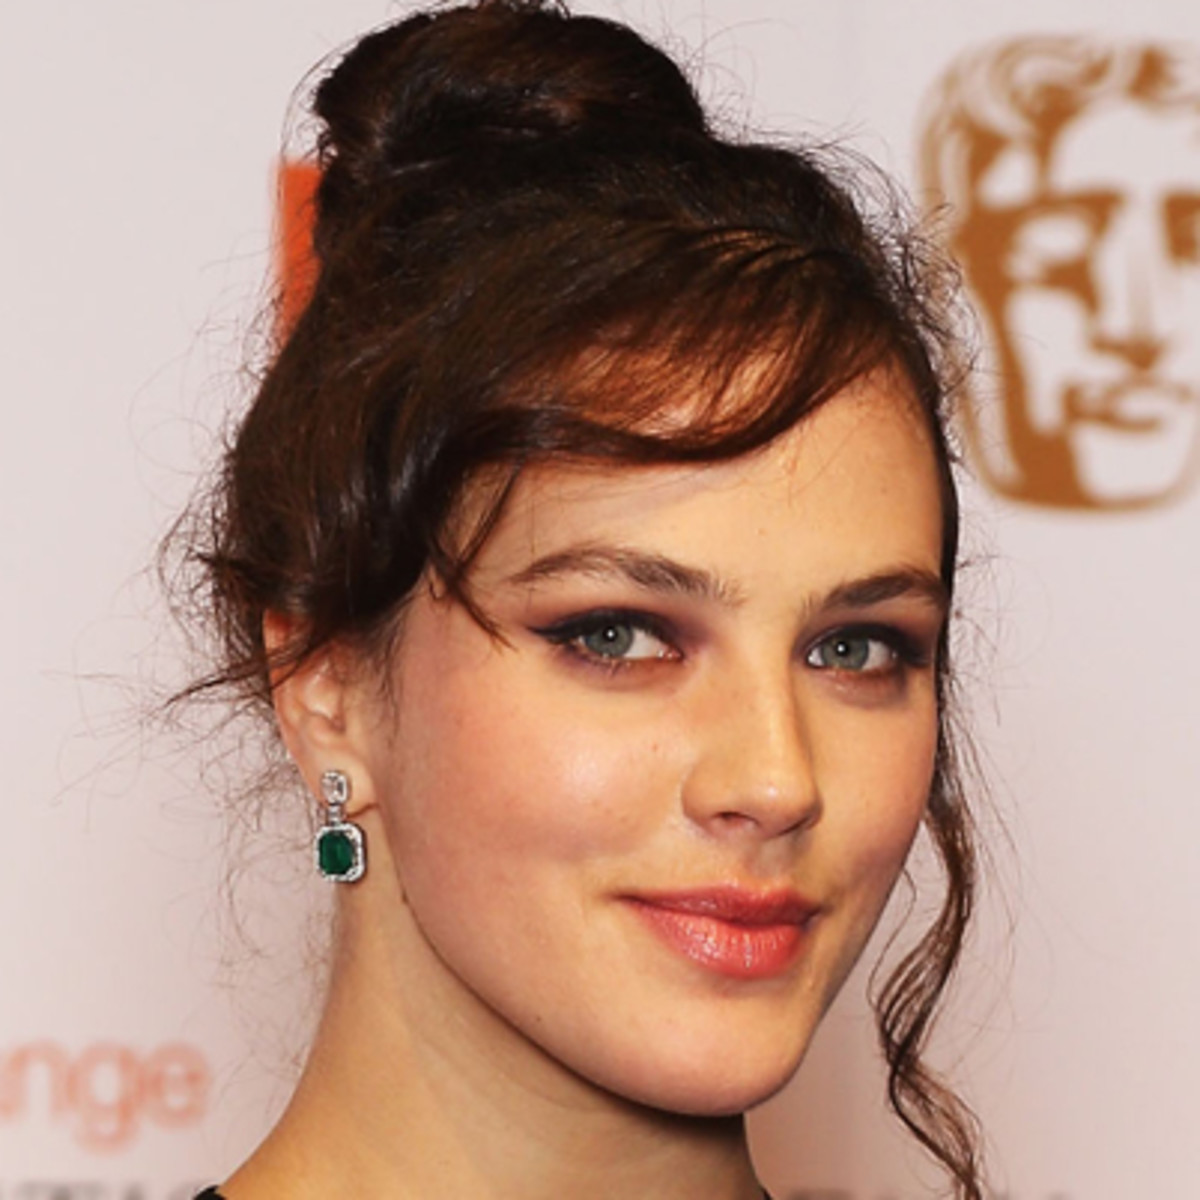 Jessica Brown Findlay (born 1989) naked (75 photo), Pussy, Sideboobs, Feet, panties 2006